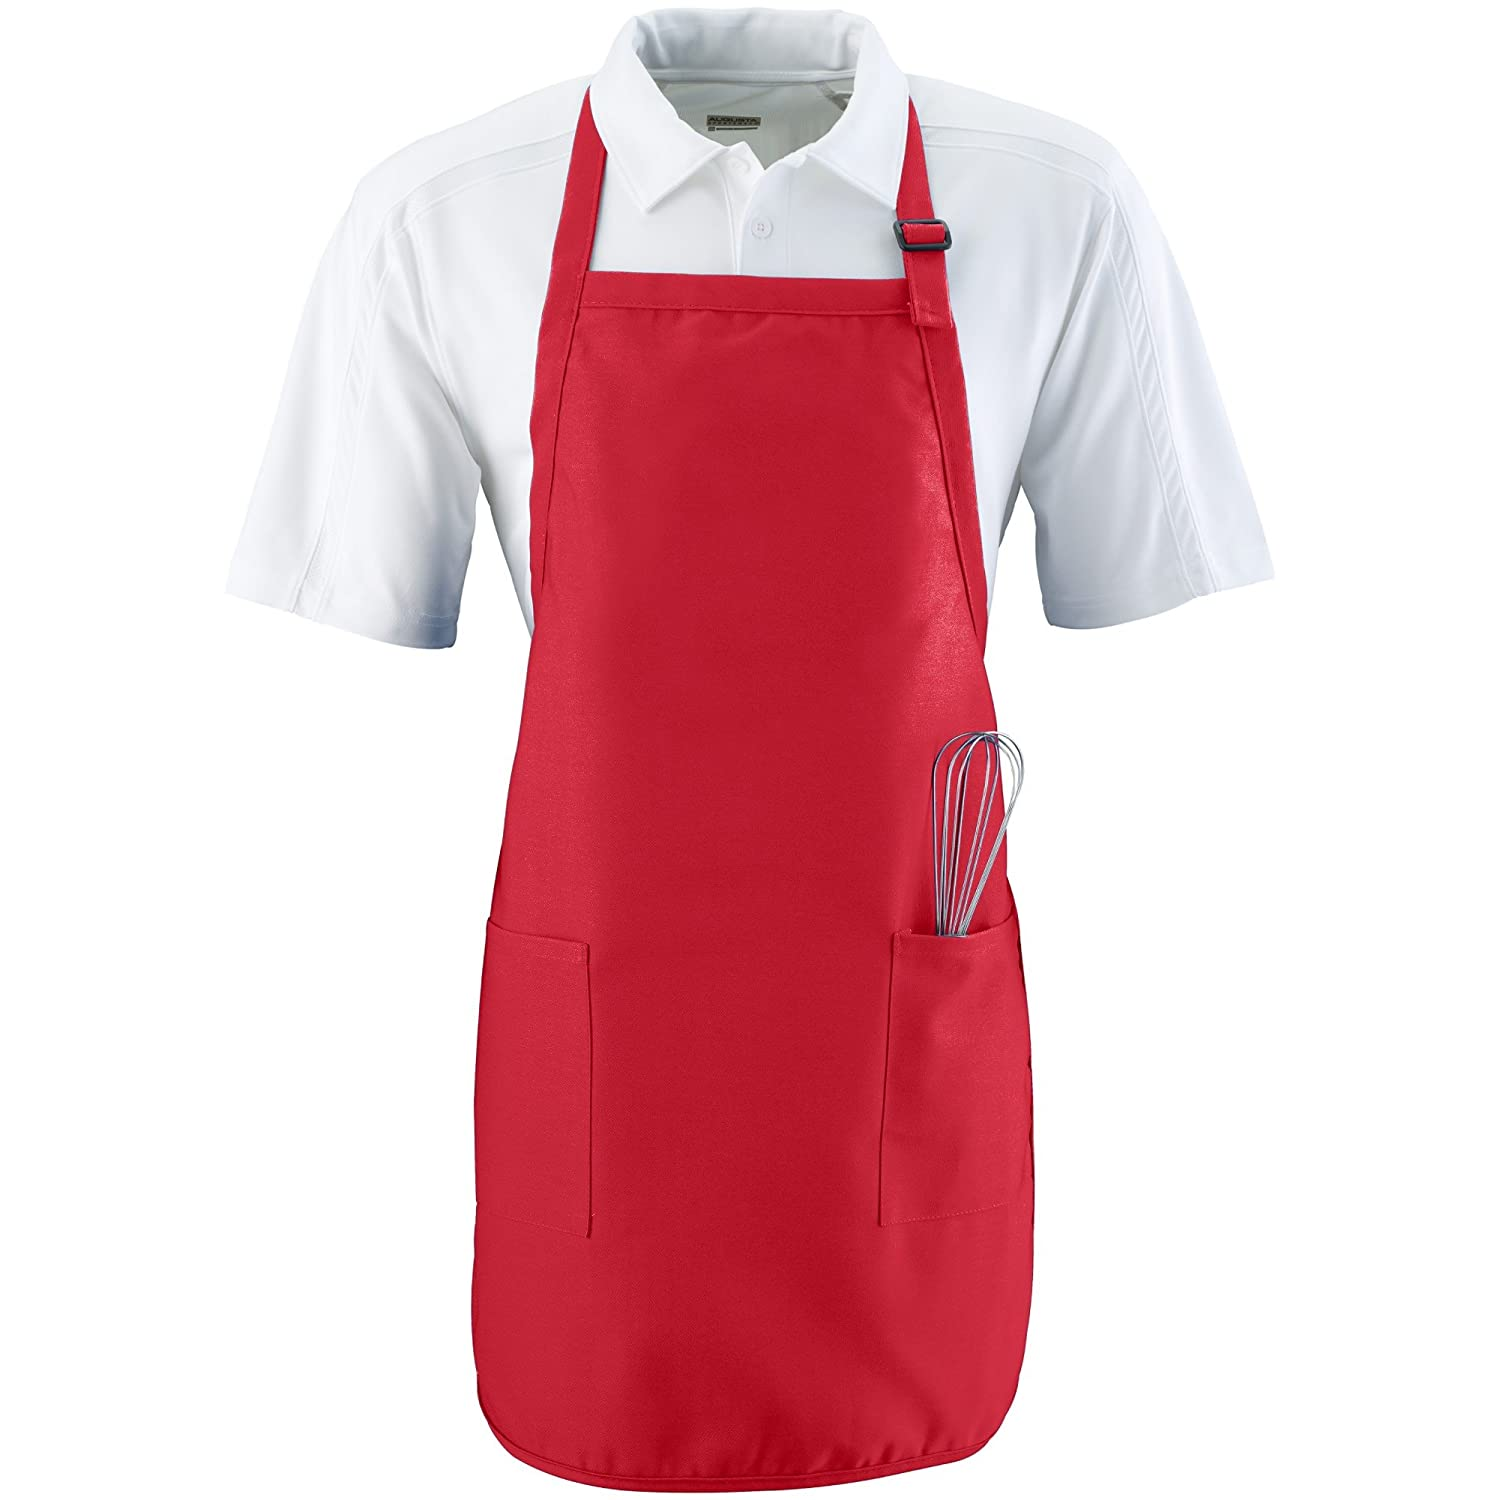 Augusta Sportswear Full Length Apron With Pockets